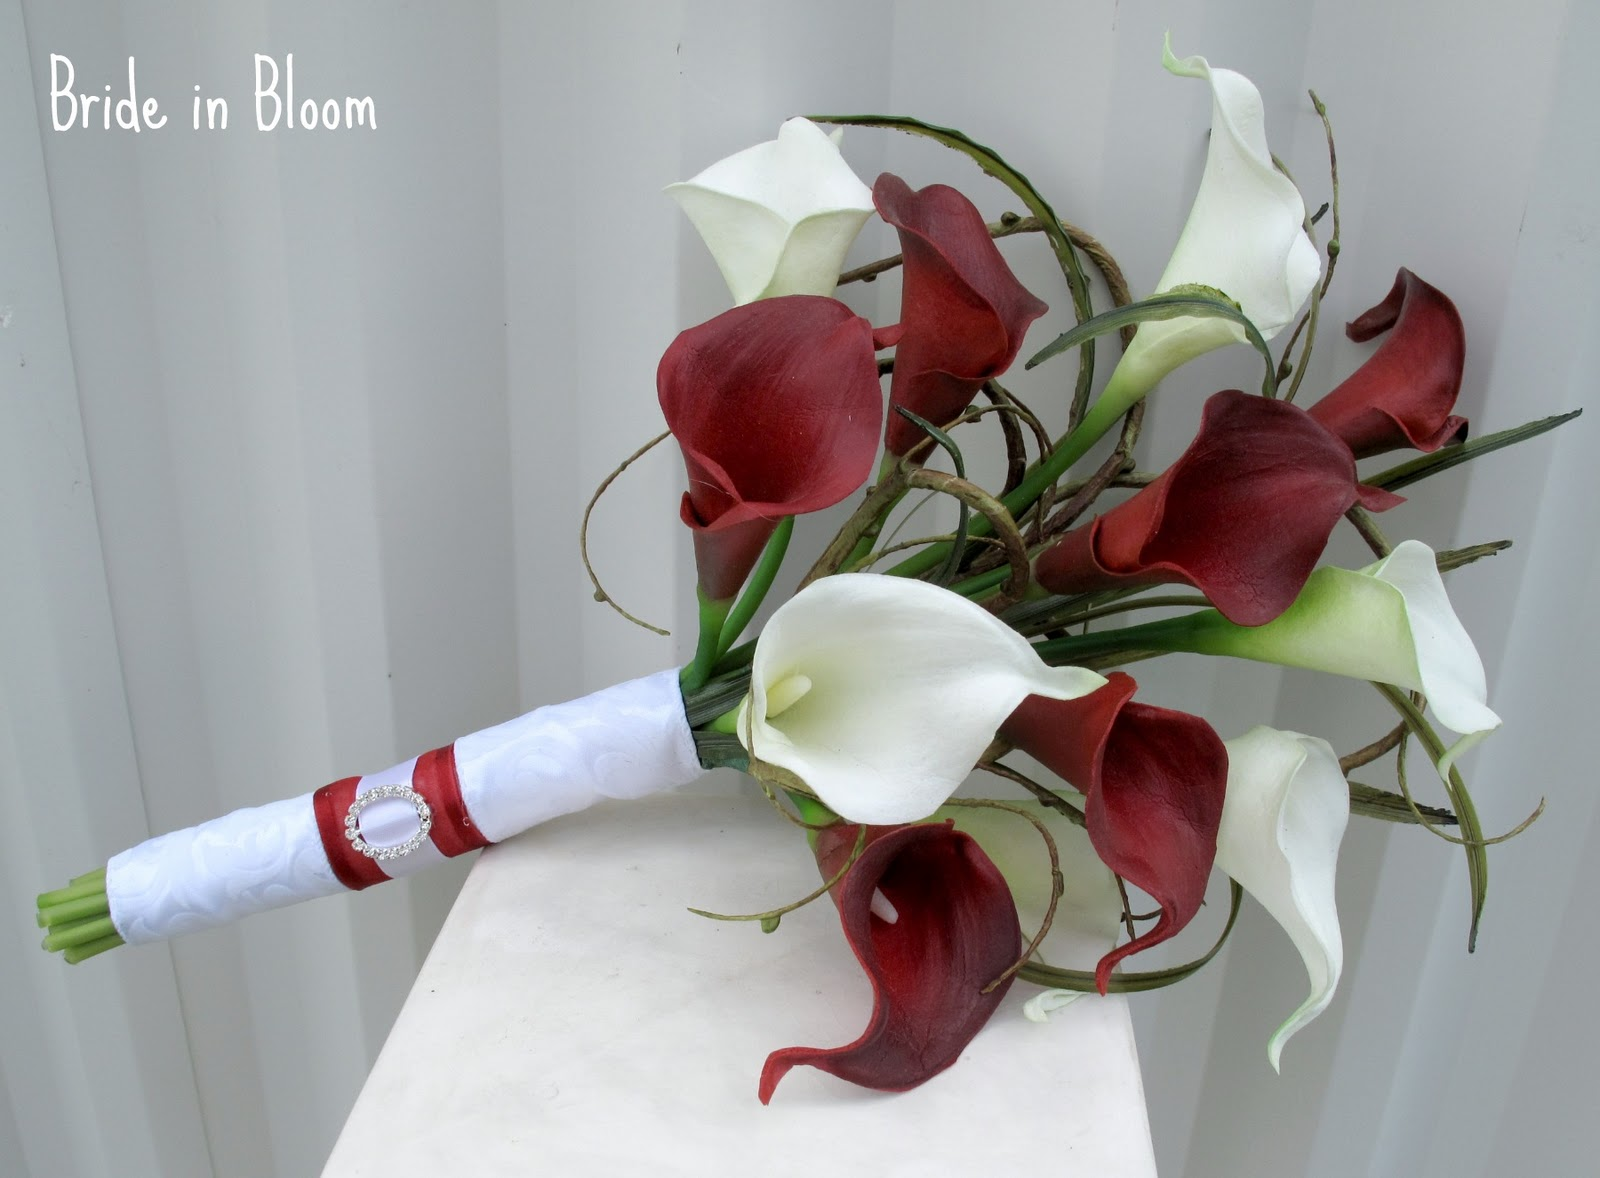 Bride in Bloom: Red & white calla lily bridal bouquet set